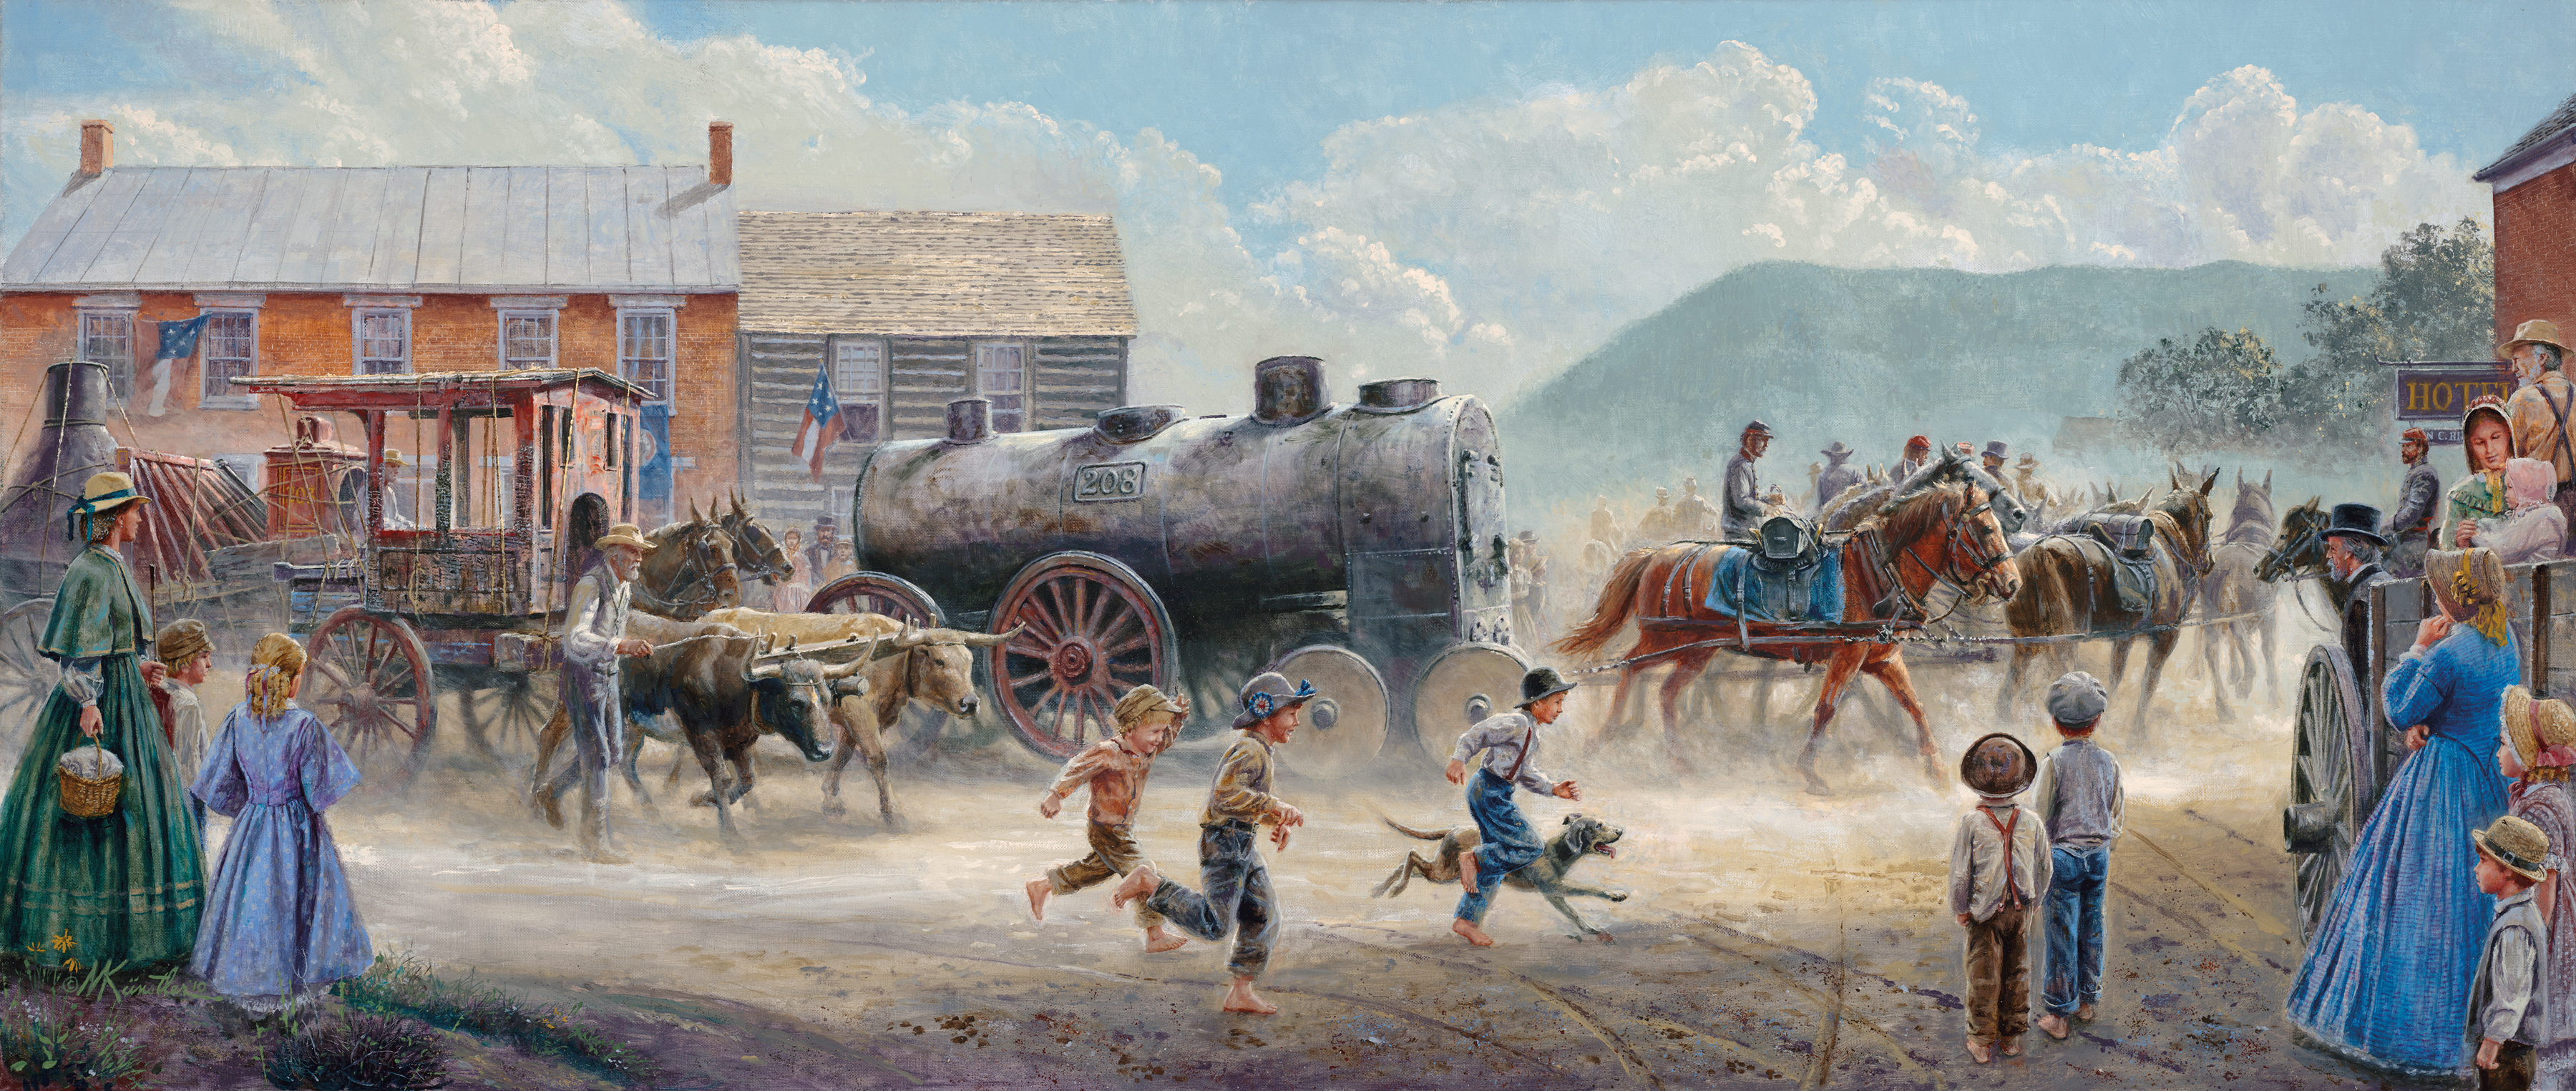 Art early american easy peasy all in one homeschool look at this one painting in particular sciox Images